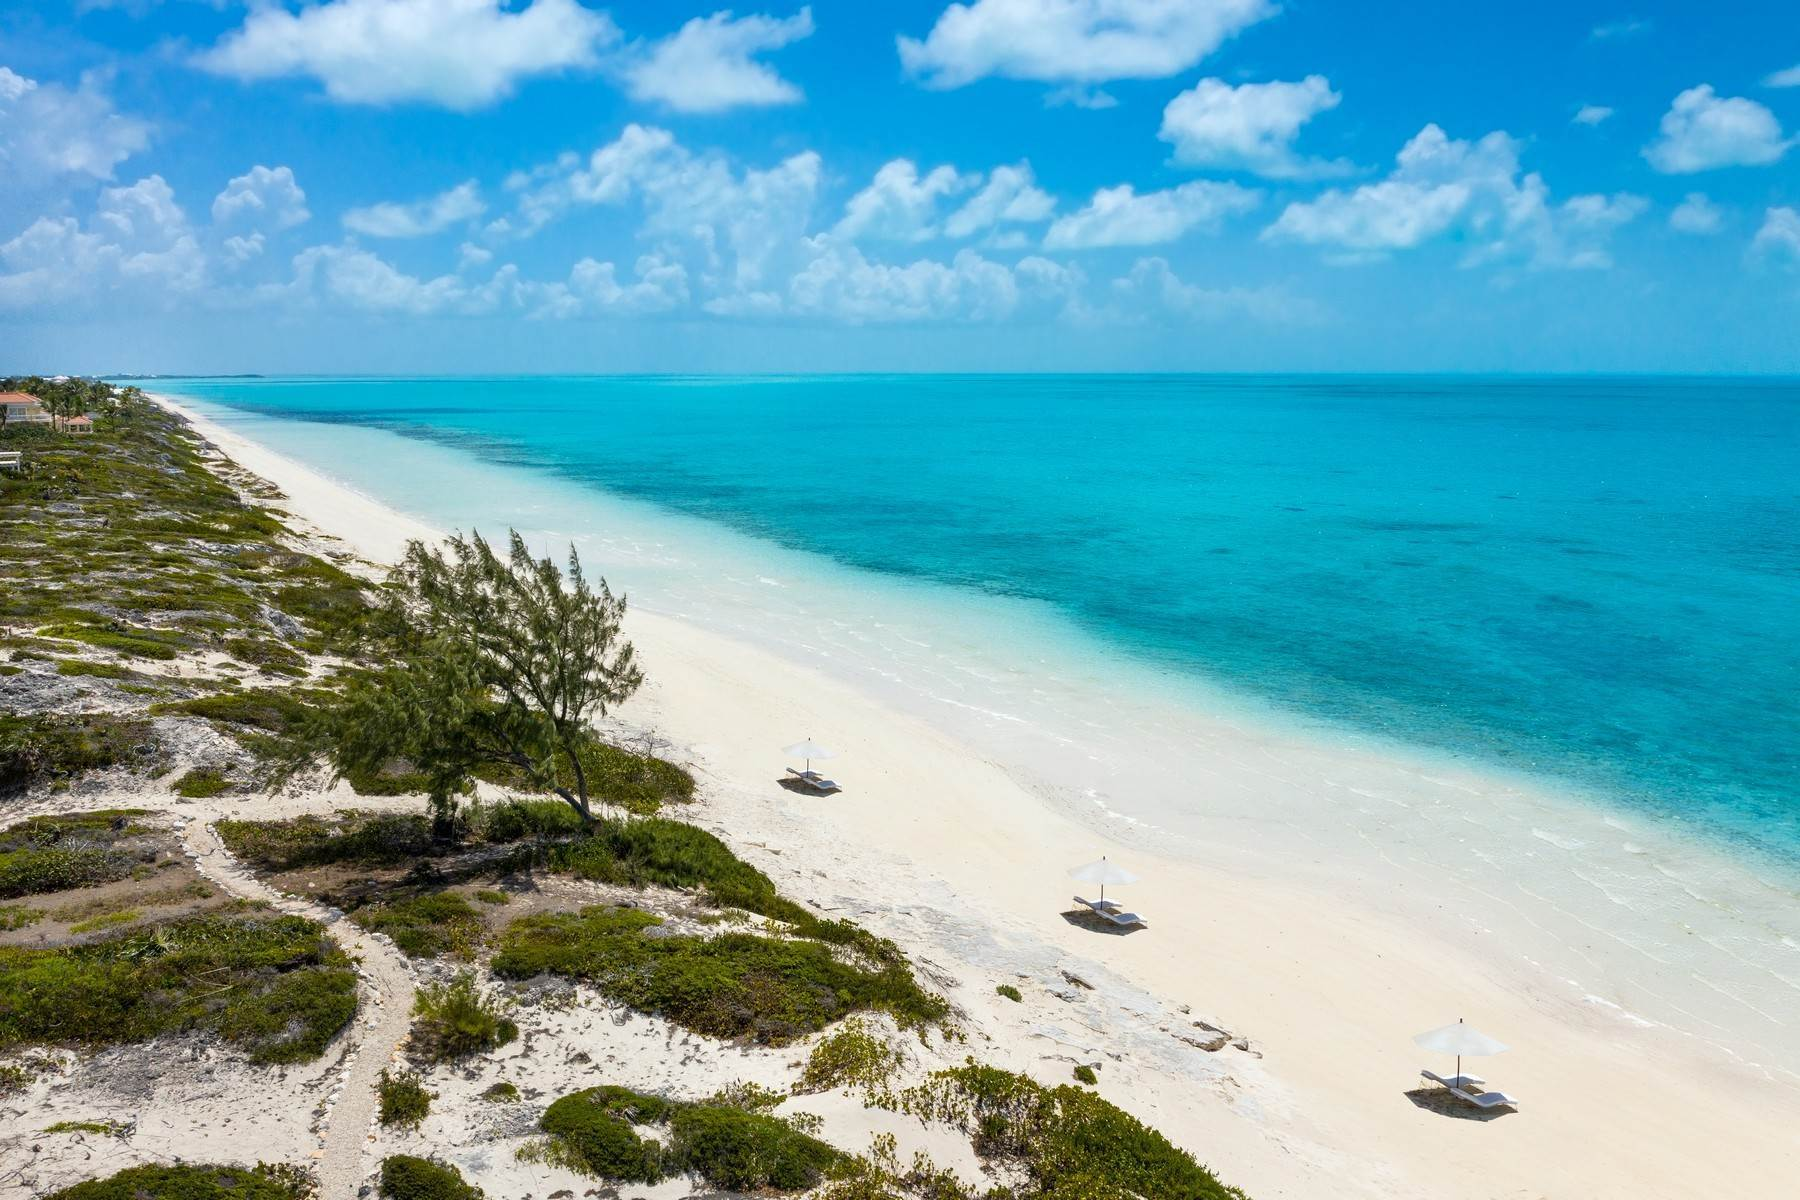 13. Single Family Homes for Sale at SOUTH BANK - THE OCEAN ESTATE II - REEF VILLA - VILLA 19 South Bank, Long Bay, Providenciales Turks And Caicos Islands